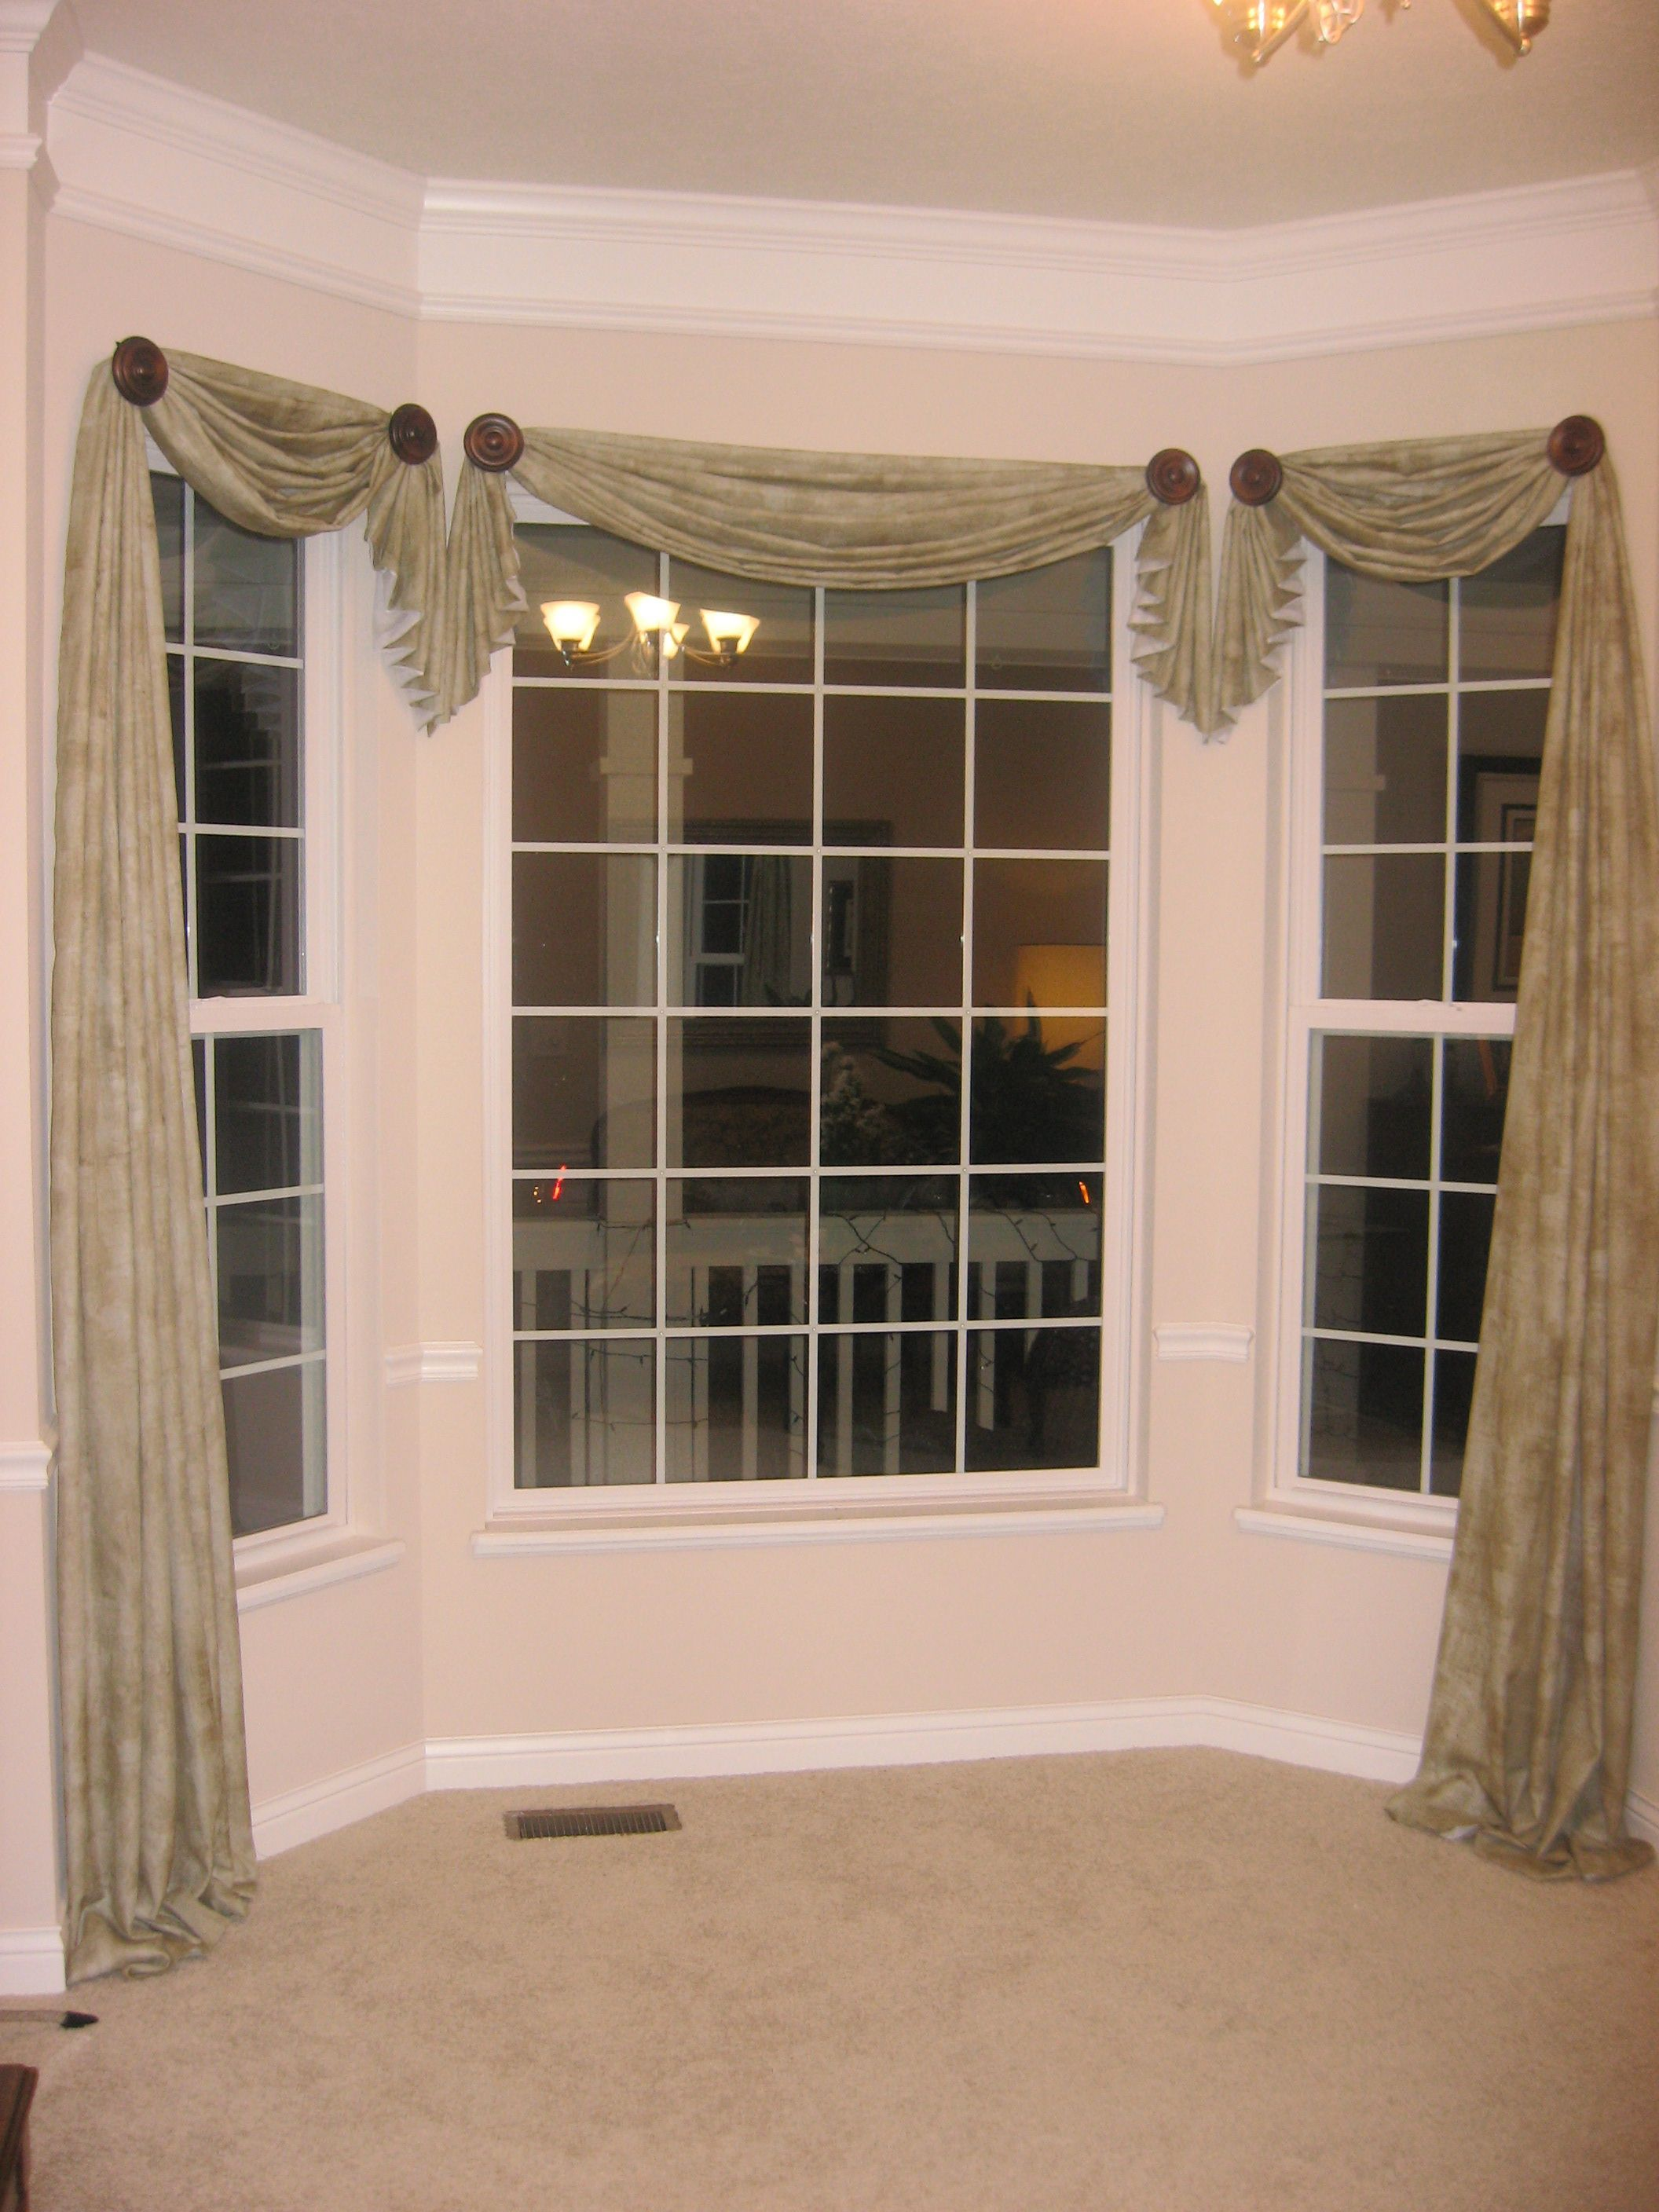 Diy Bay Window Curtain Rod For Less Budget Bay Window Curtains Bedroom Window Treatments Living Room Bay Window Curtains Living Room Bay Window Treatments